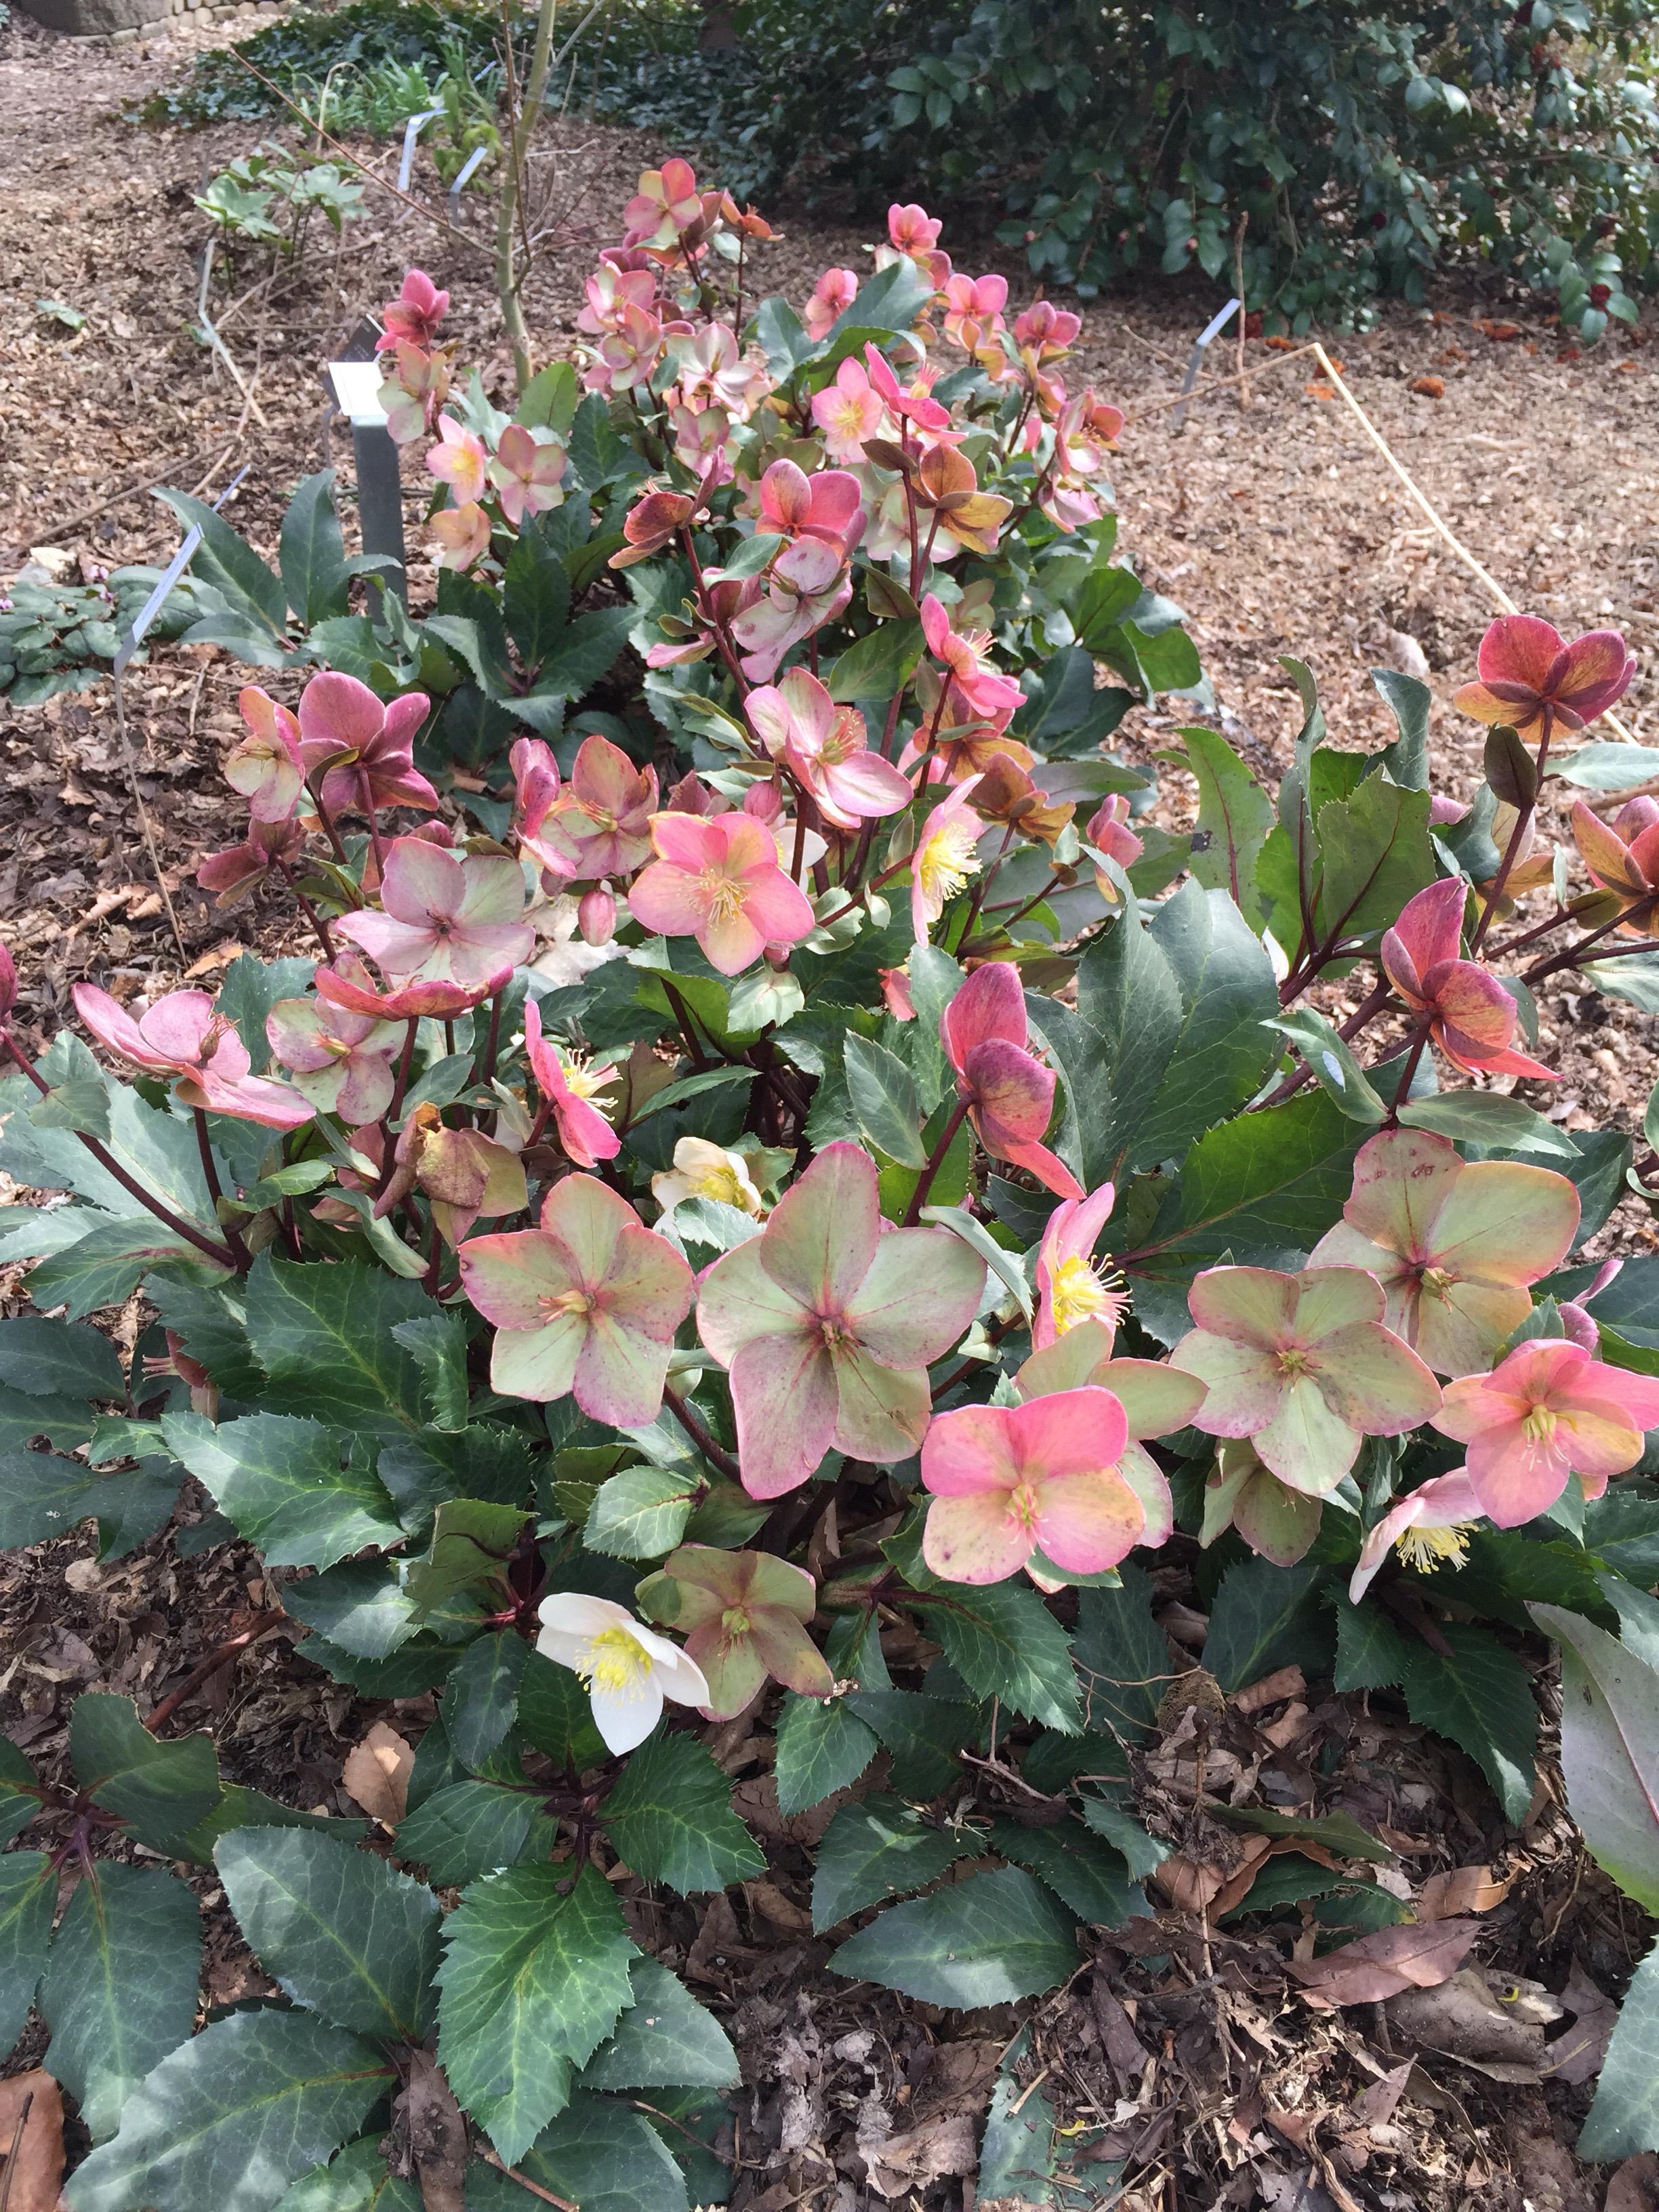 Hilarious Rare I Purchased A Few New Ones February 2016 Arthur Plant Delights Nursery Coupon Code Plant Delights Nursery Hours It Was Winter Open House At Plant Delights Y Are Awell Known Vendor houzz-03 Plant Delights Nursery